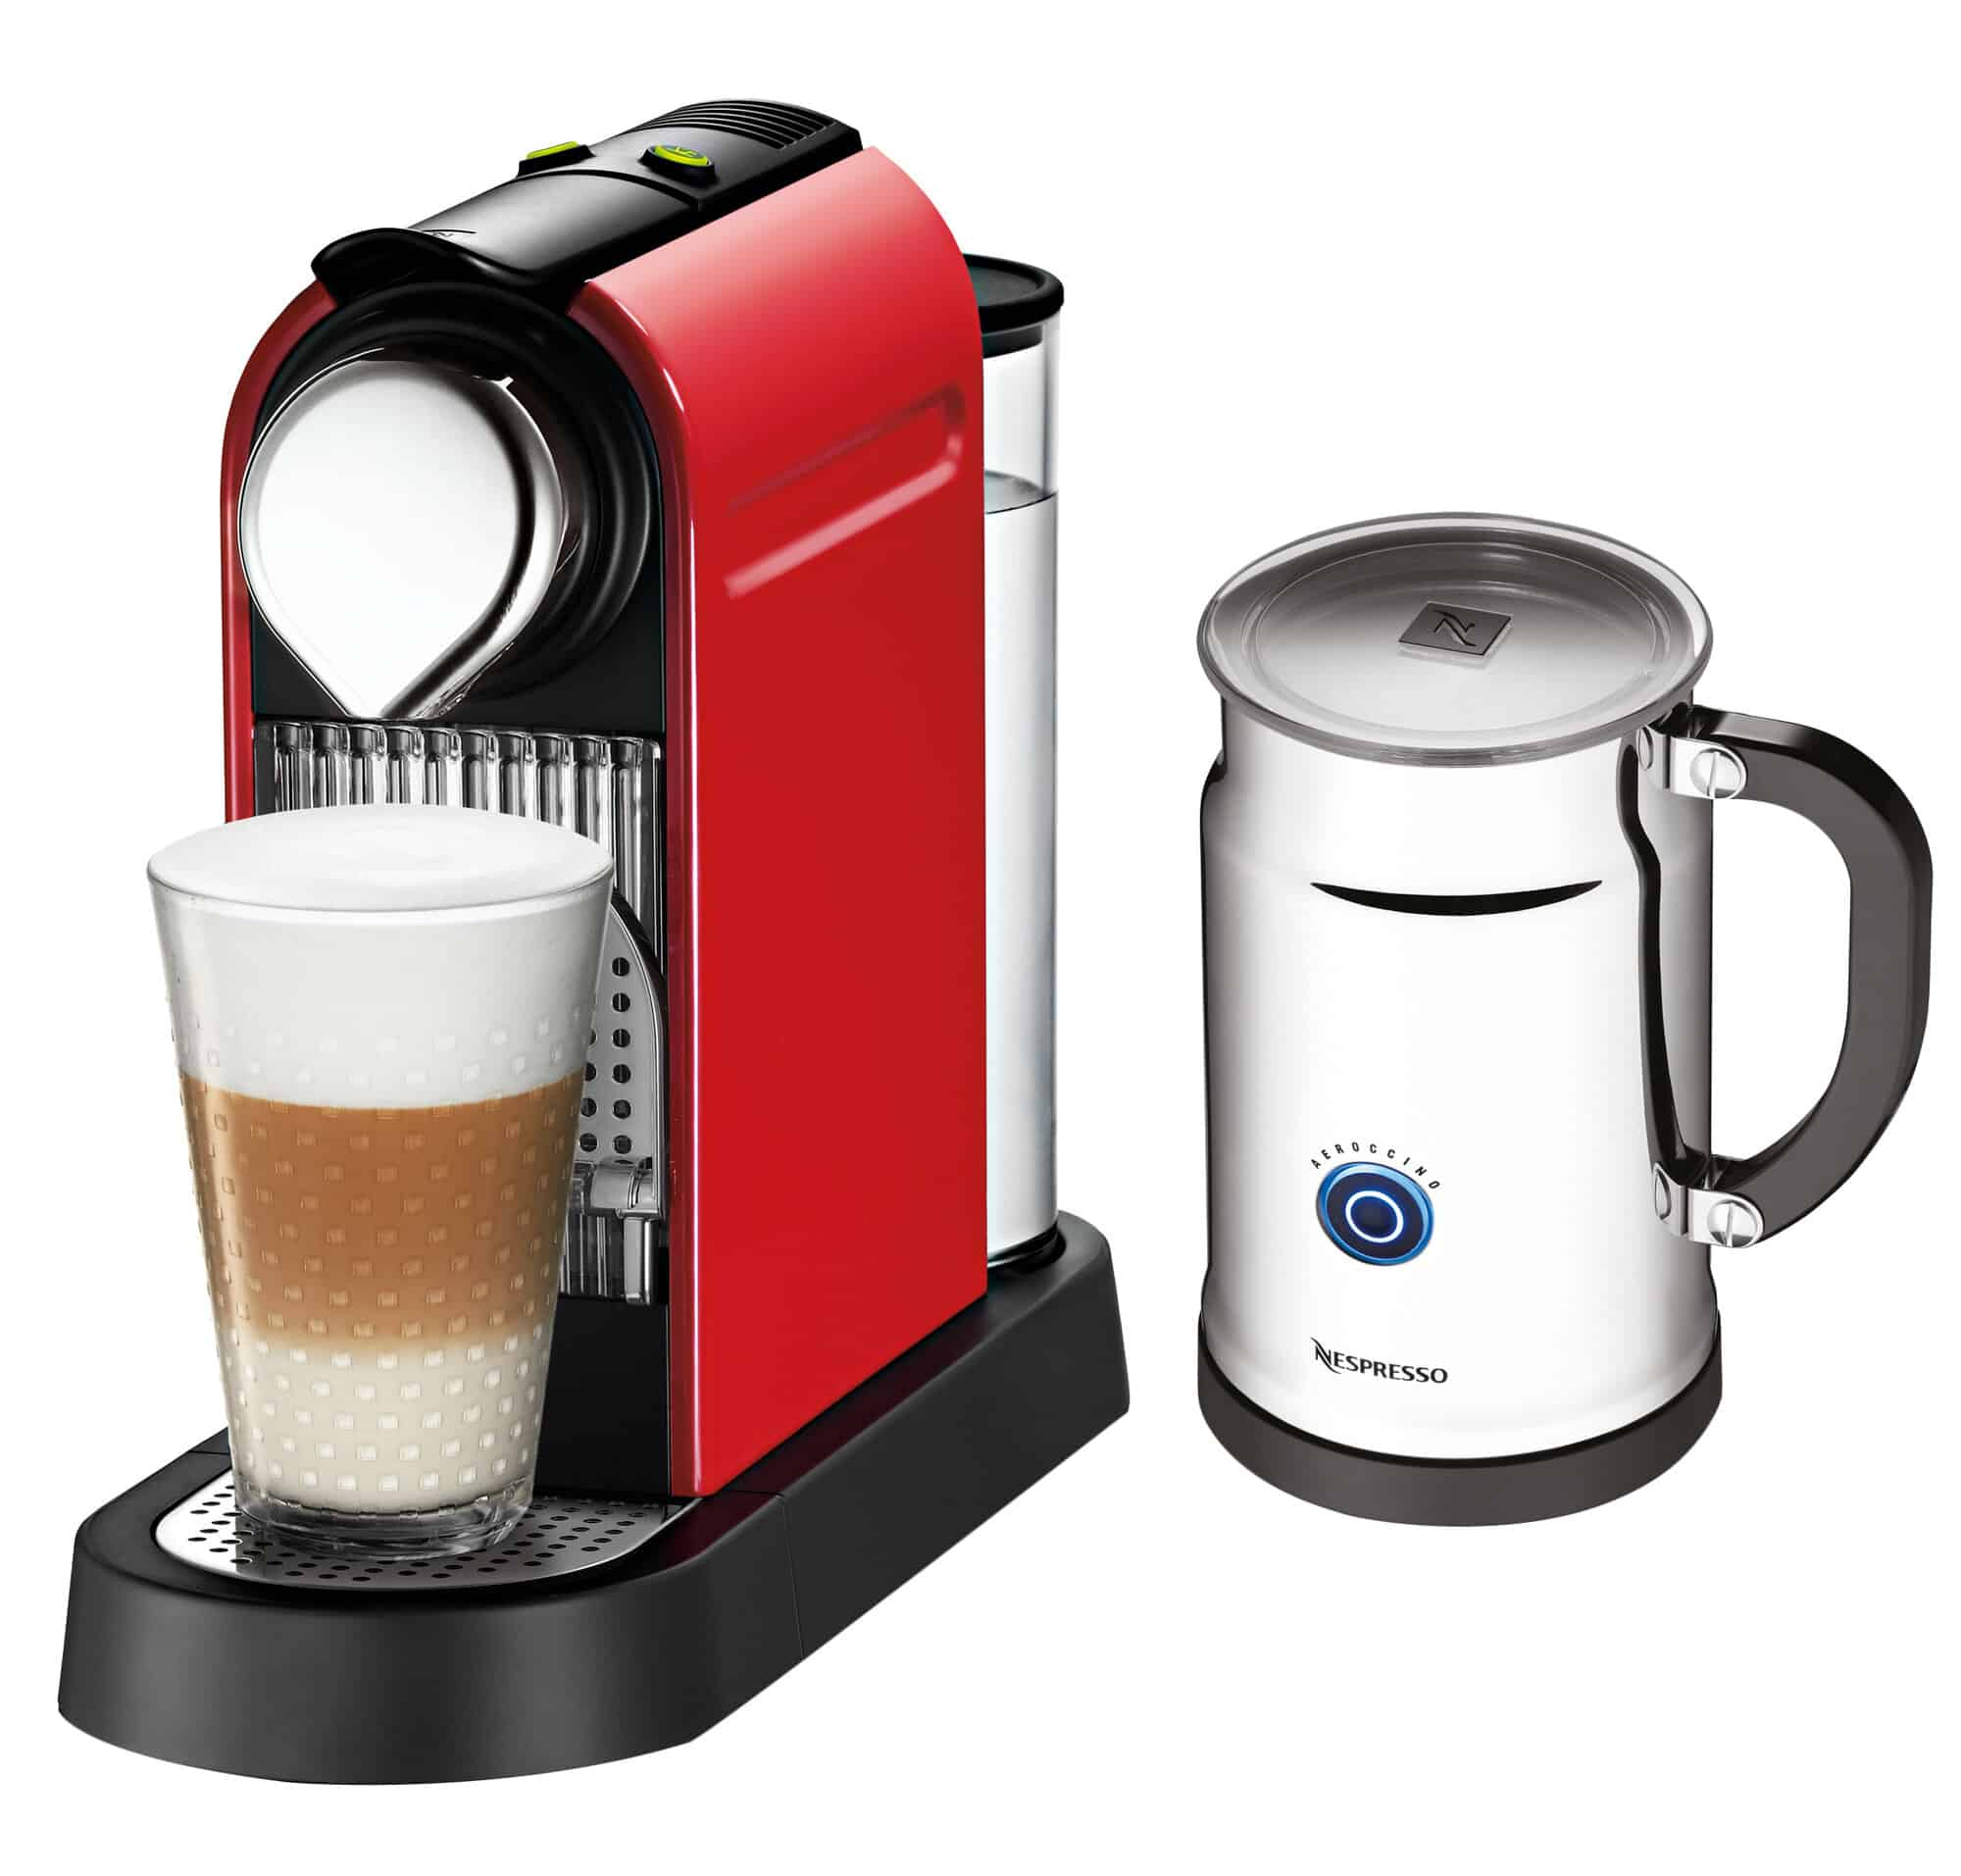 Nespresso capsule coffee machine with stand-alone milk frother